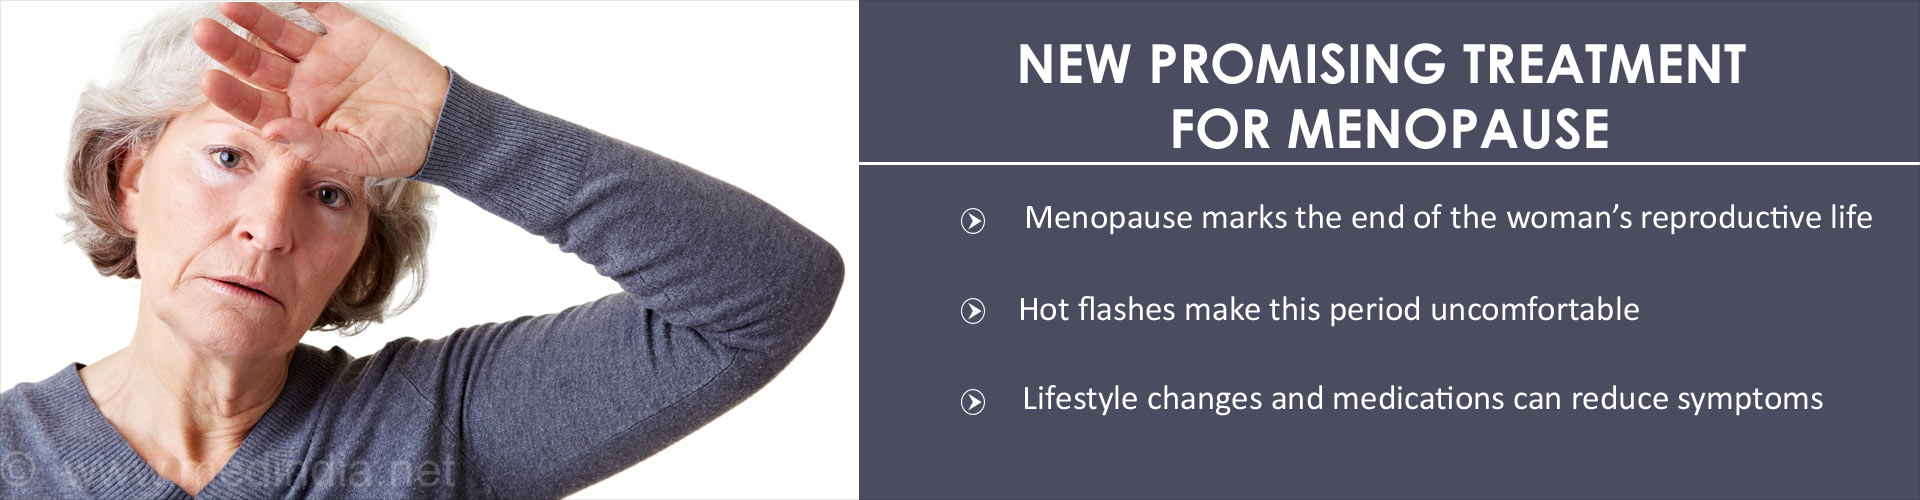 New Promising Treatment for Menopause - Menopause marks the end of the woman''s reproductive life - Hot flashes make this period uncomfortable - Lifestyle changes and medications can reduce symptoms